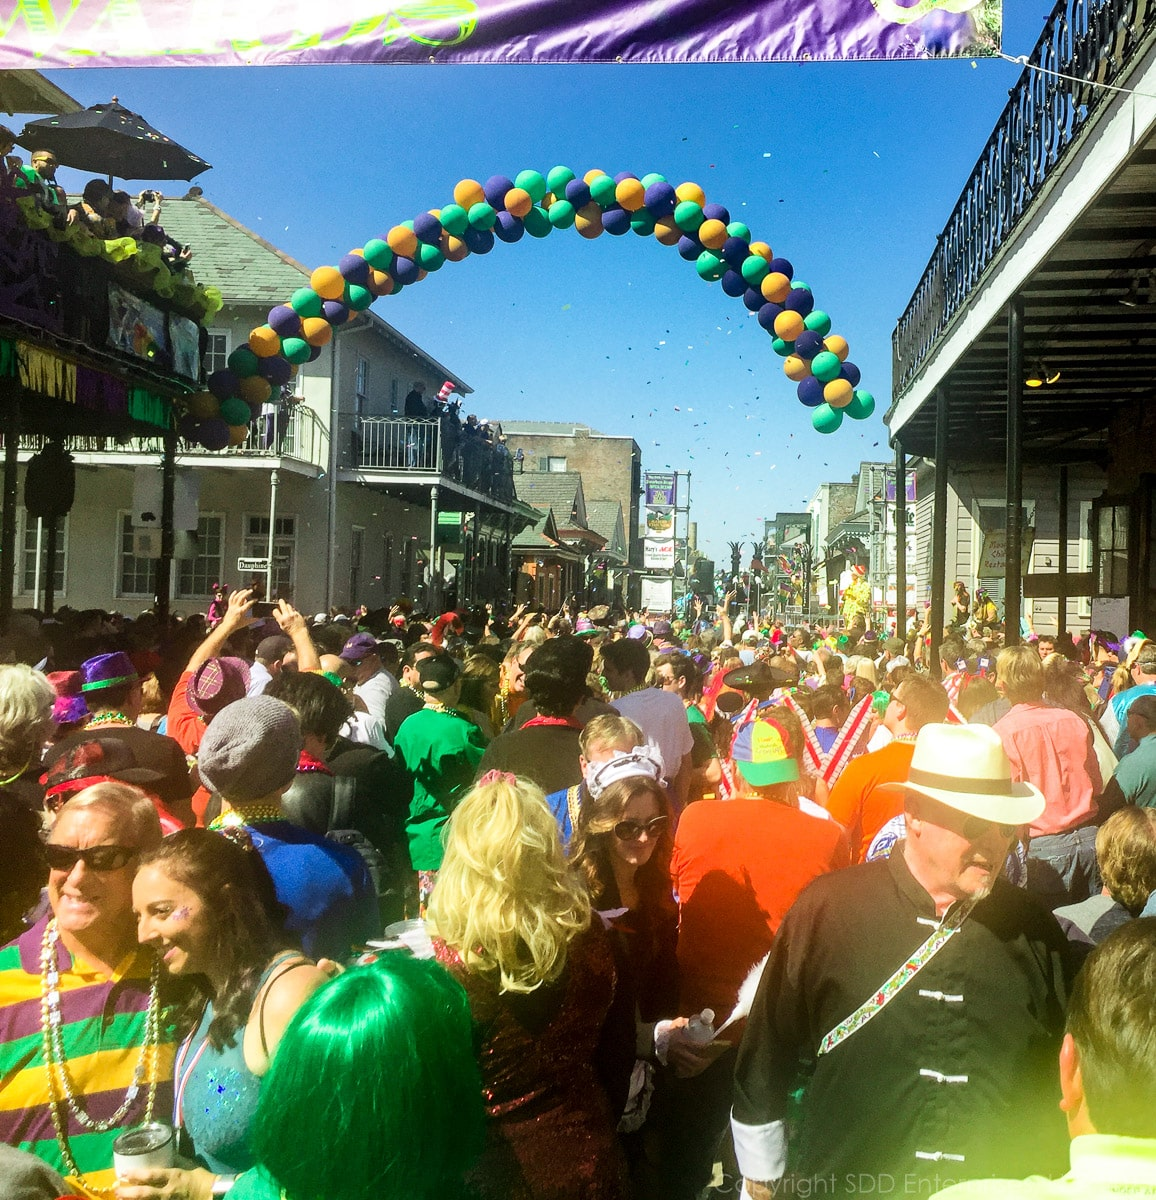 Crowds on Bourbon Street on Mardi Gras Day